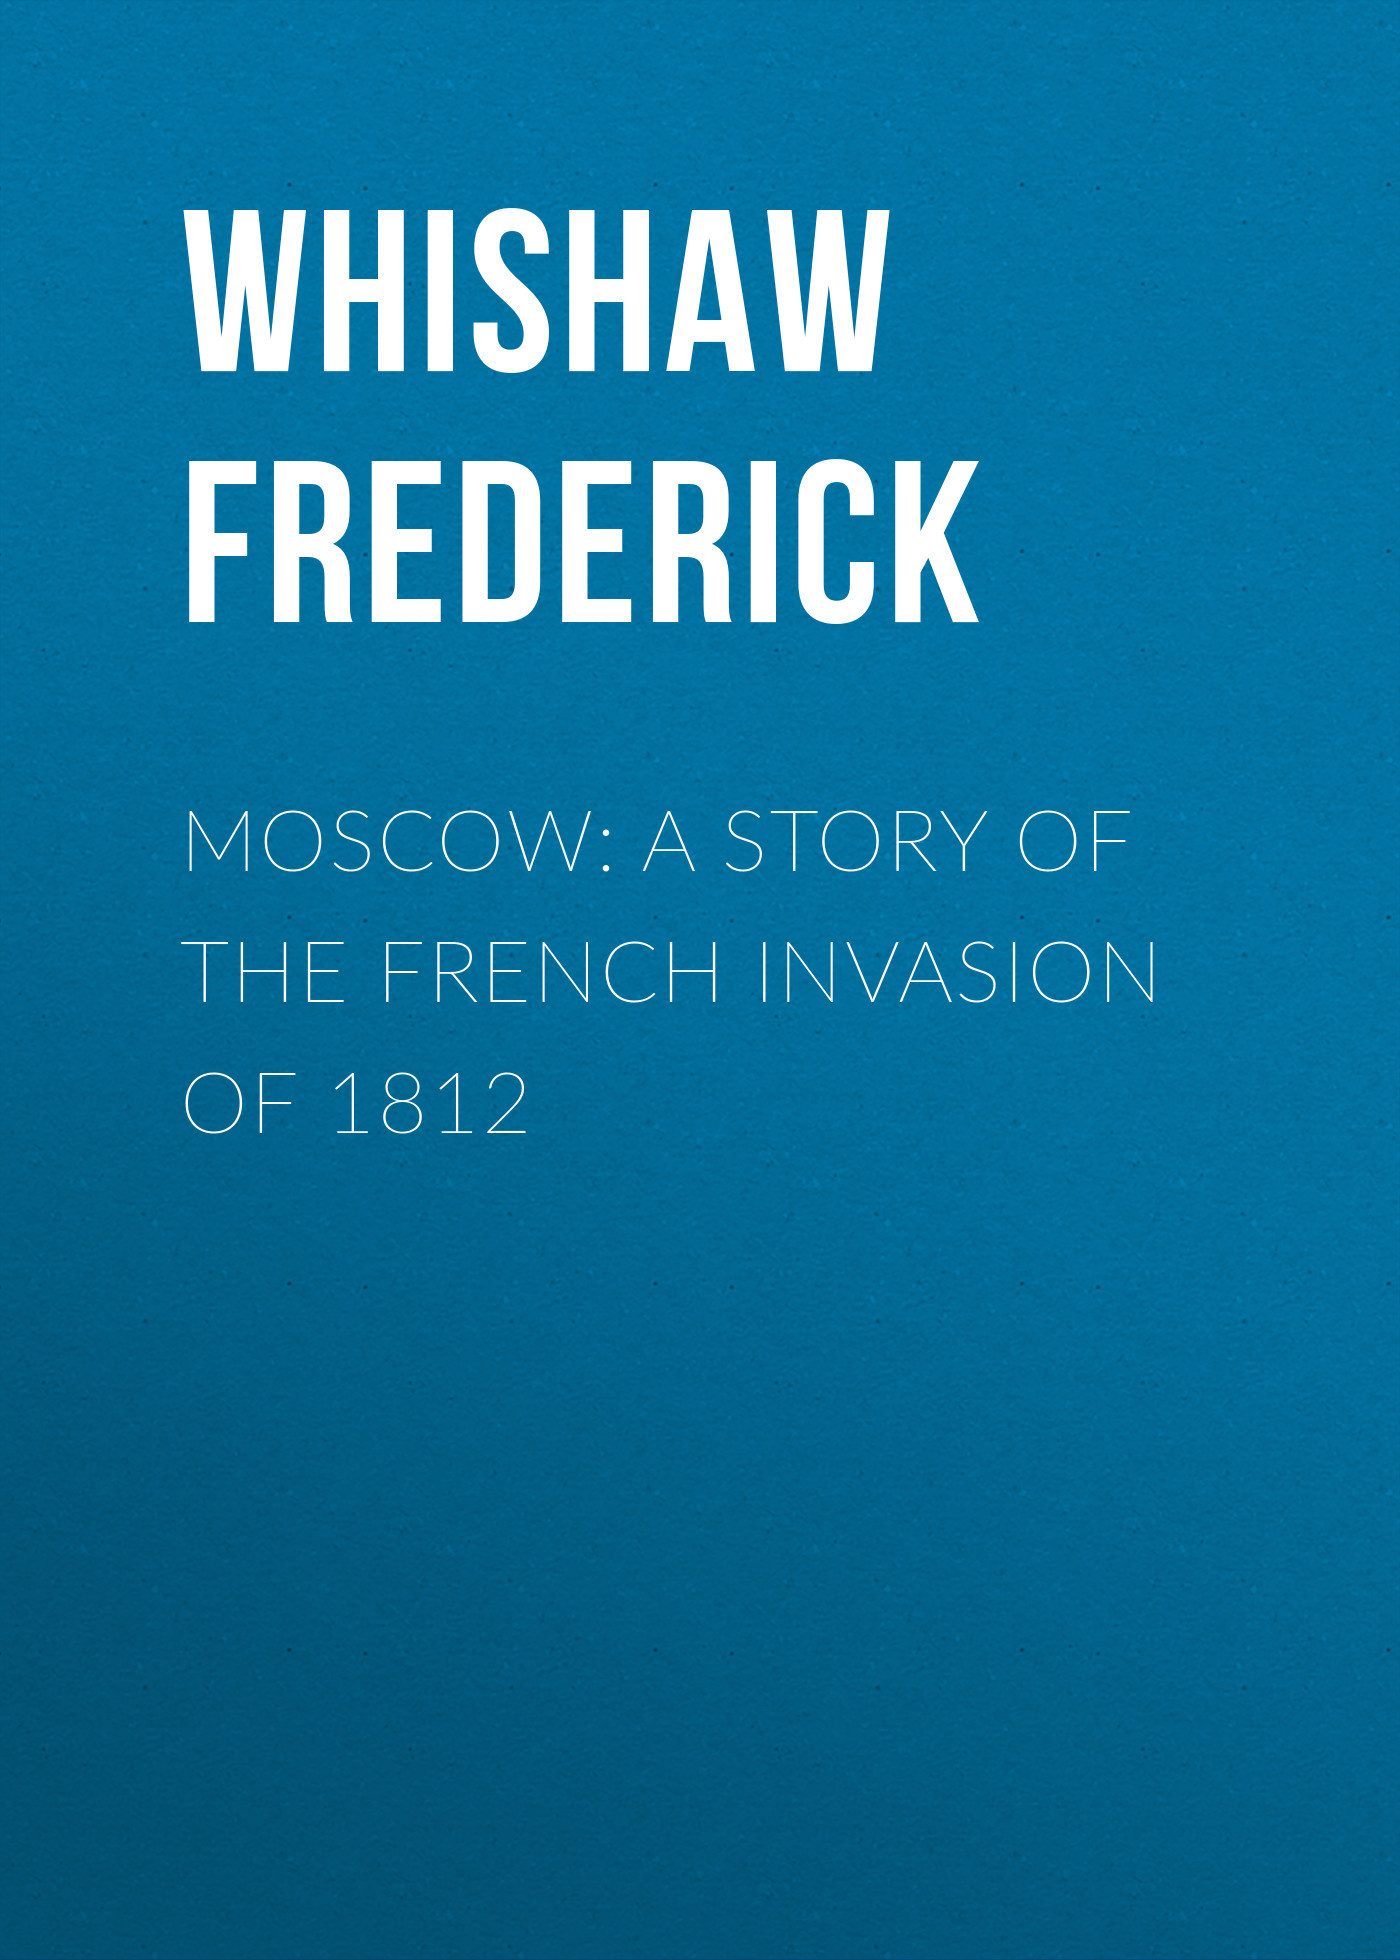 Whishaw Frederick Moscow: A Story of the French Invasion of 1812 чехол heart of moscow heart of moscow чехол